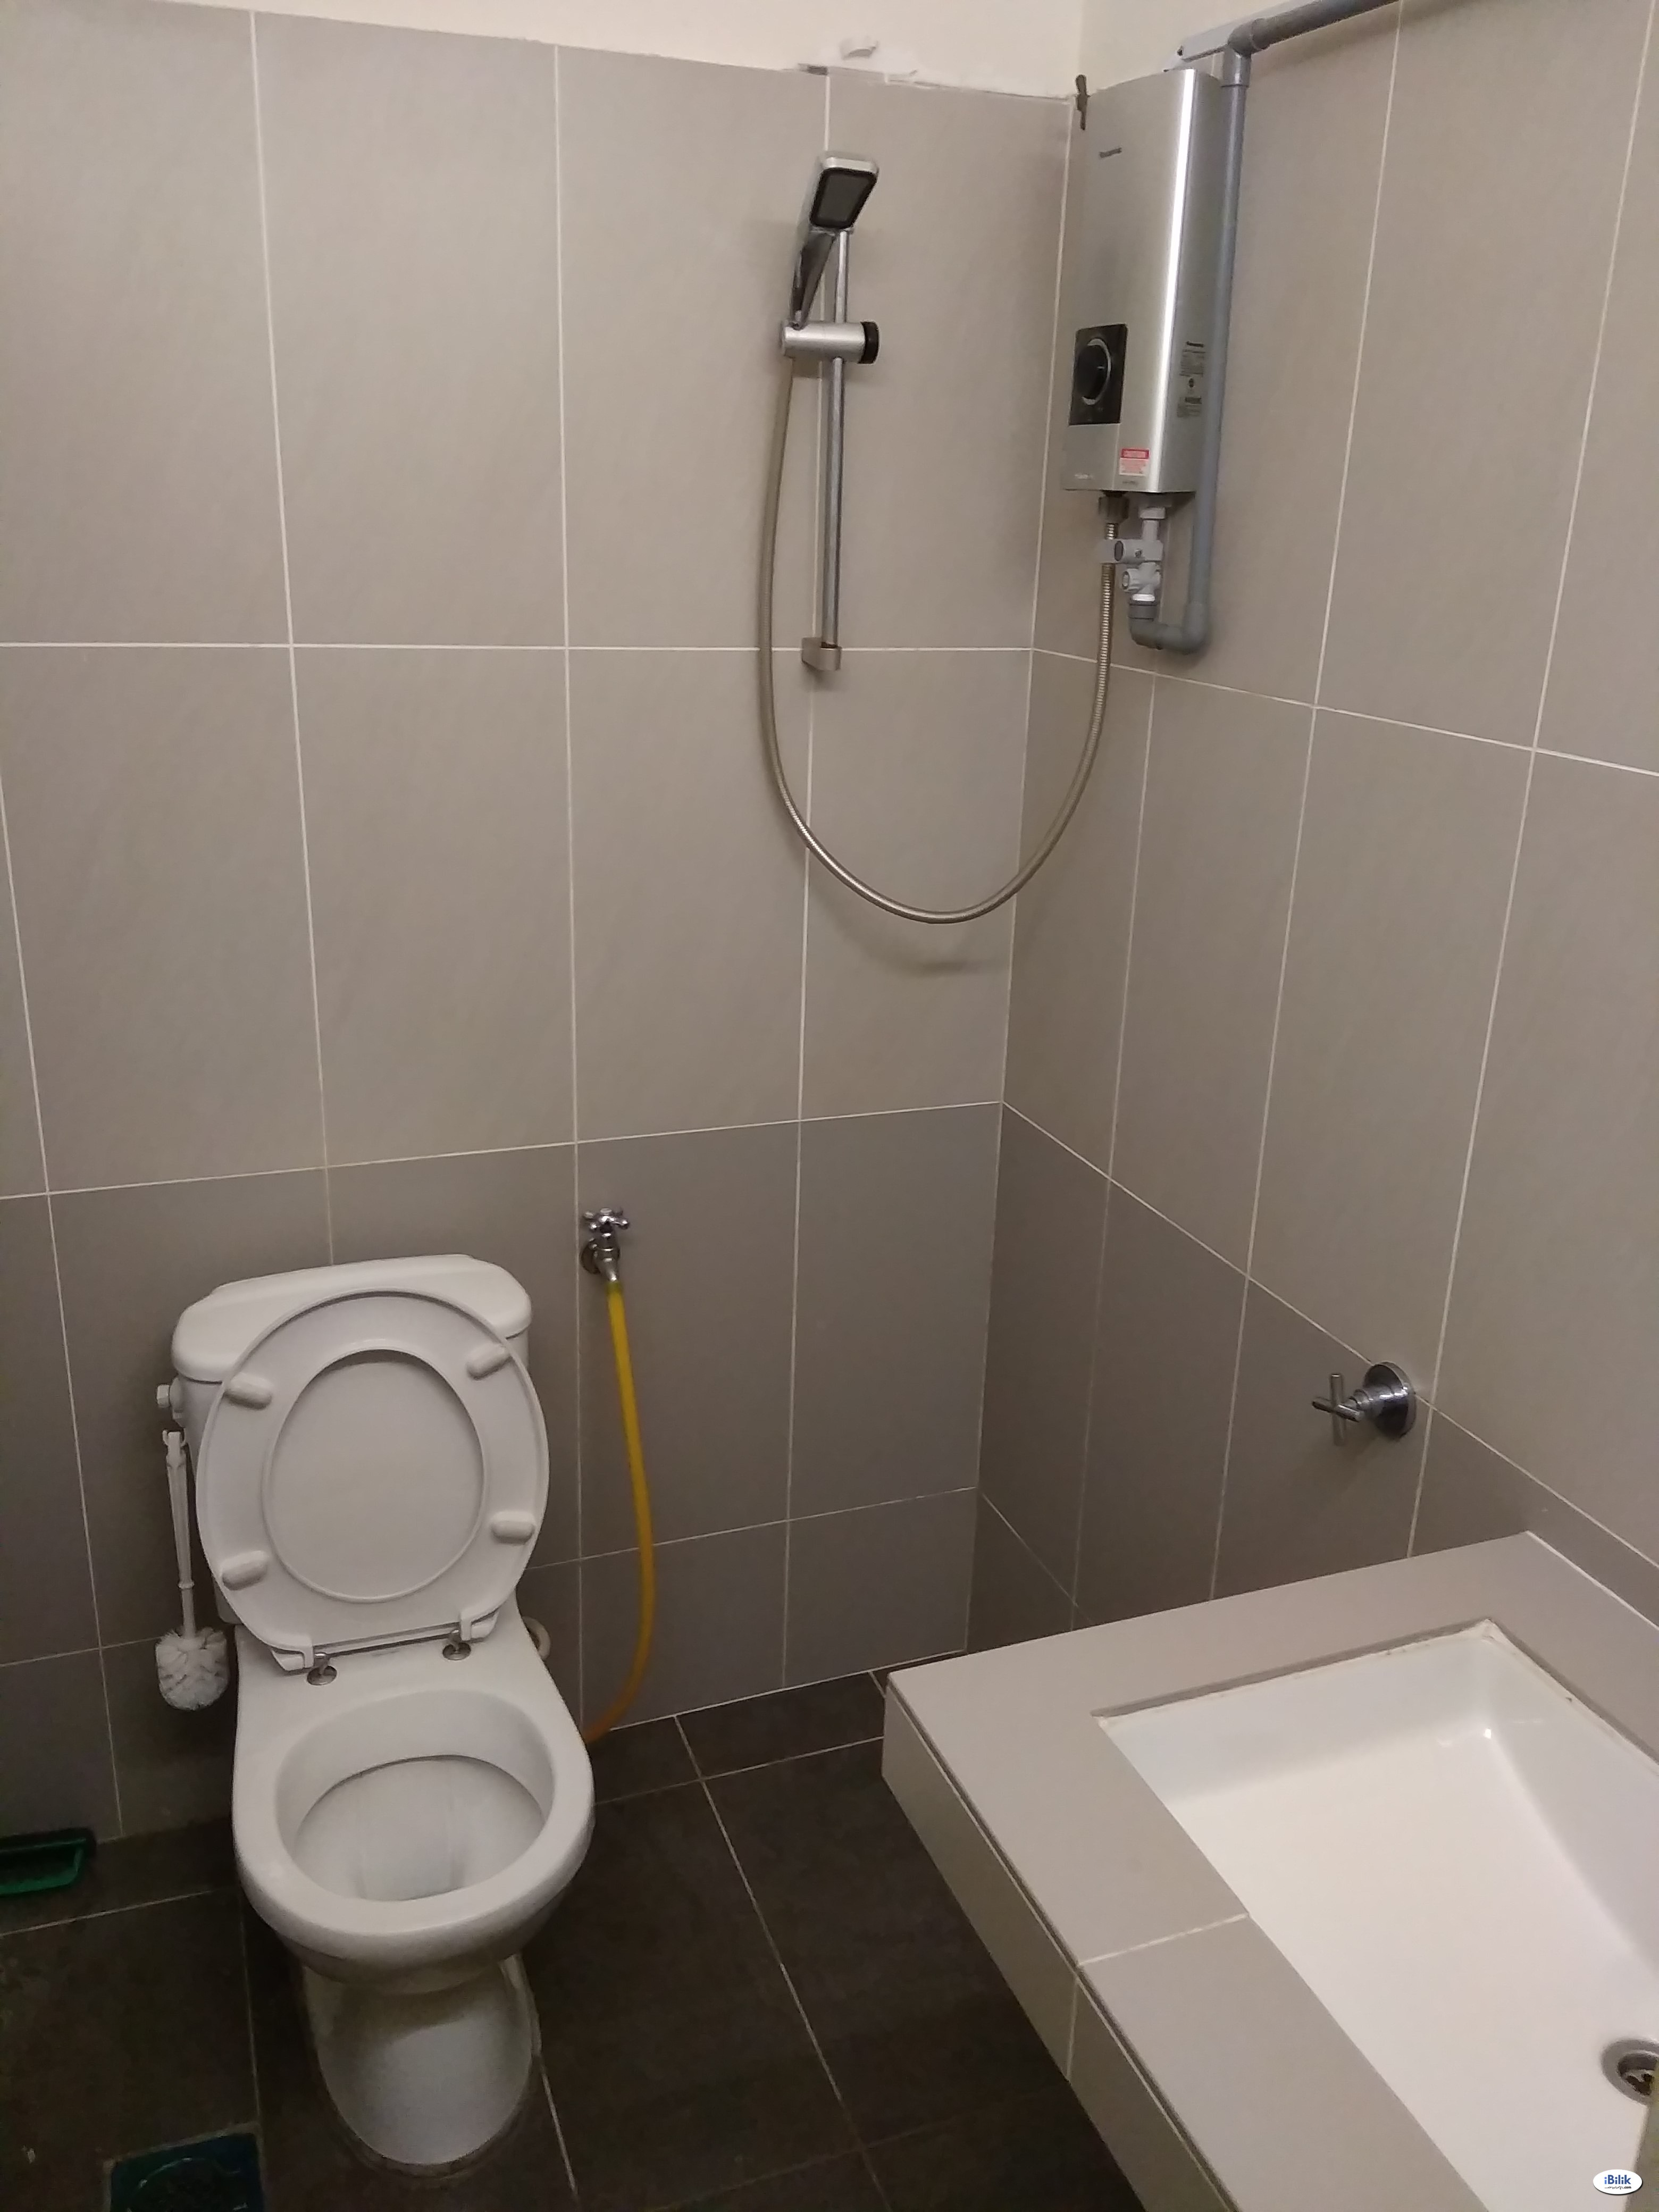 [Happy Garden][Kuchai Lama] Room For Rent - Landed - ONLY NON-SMOKER -UNIT C